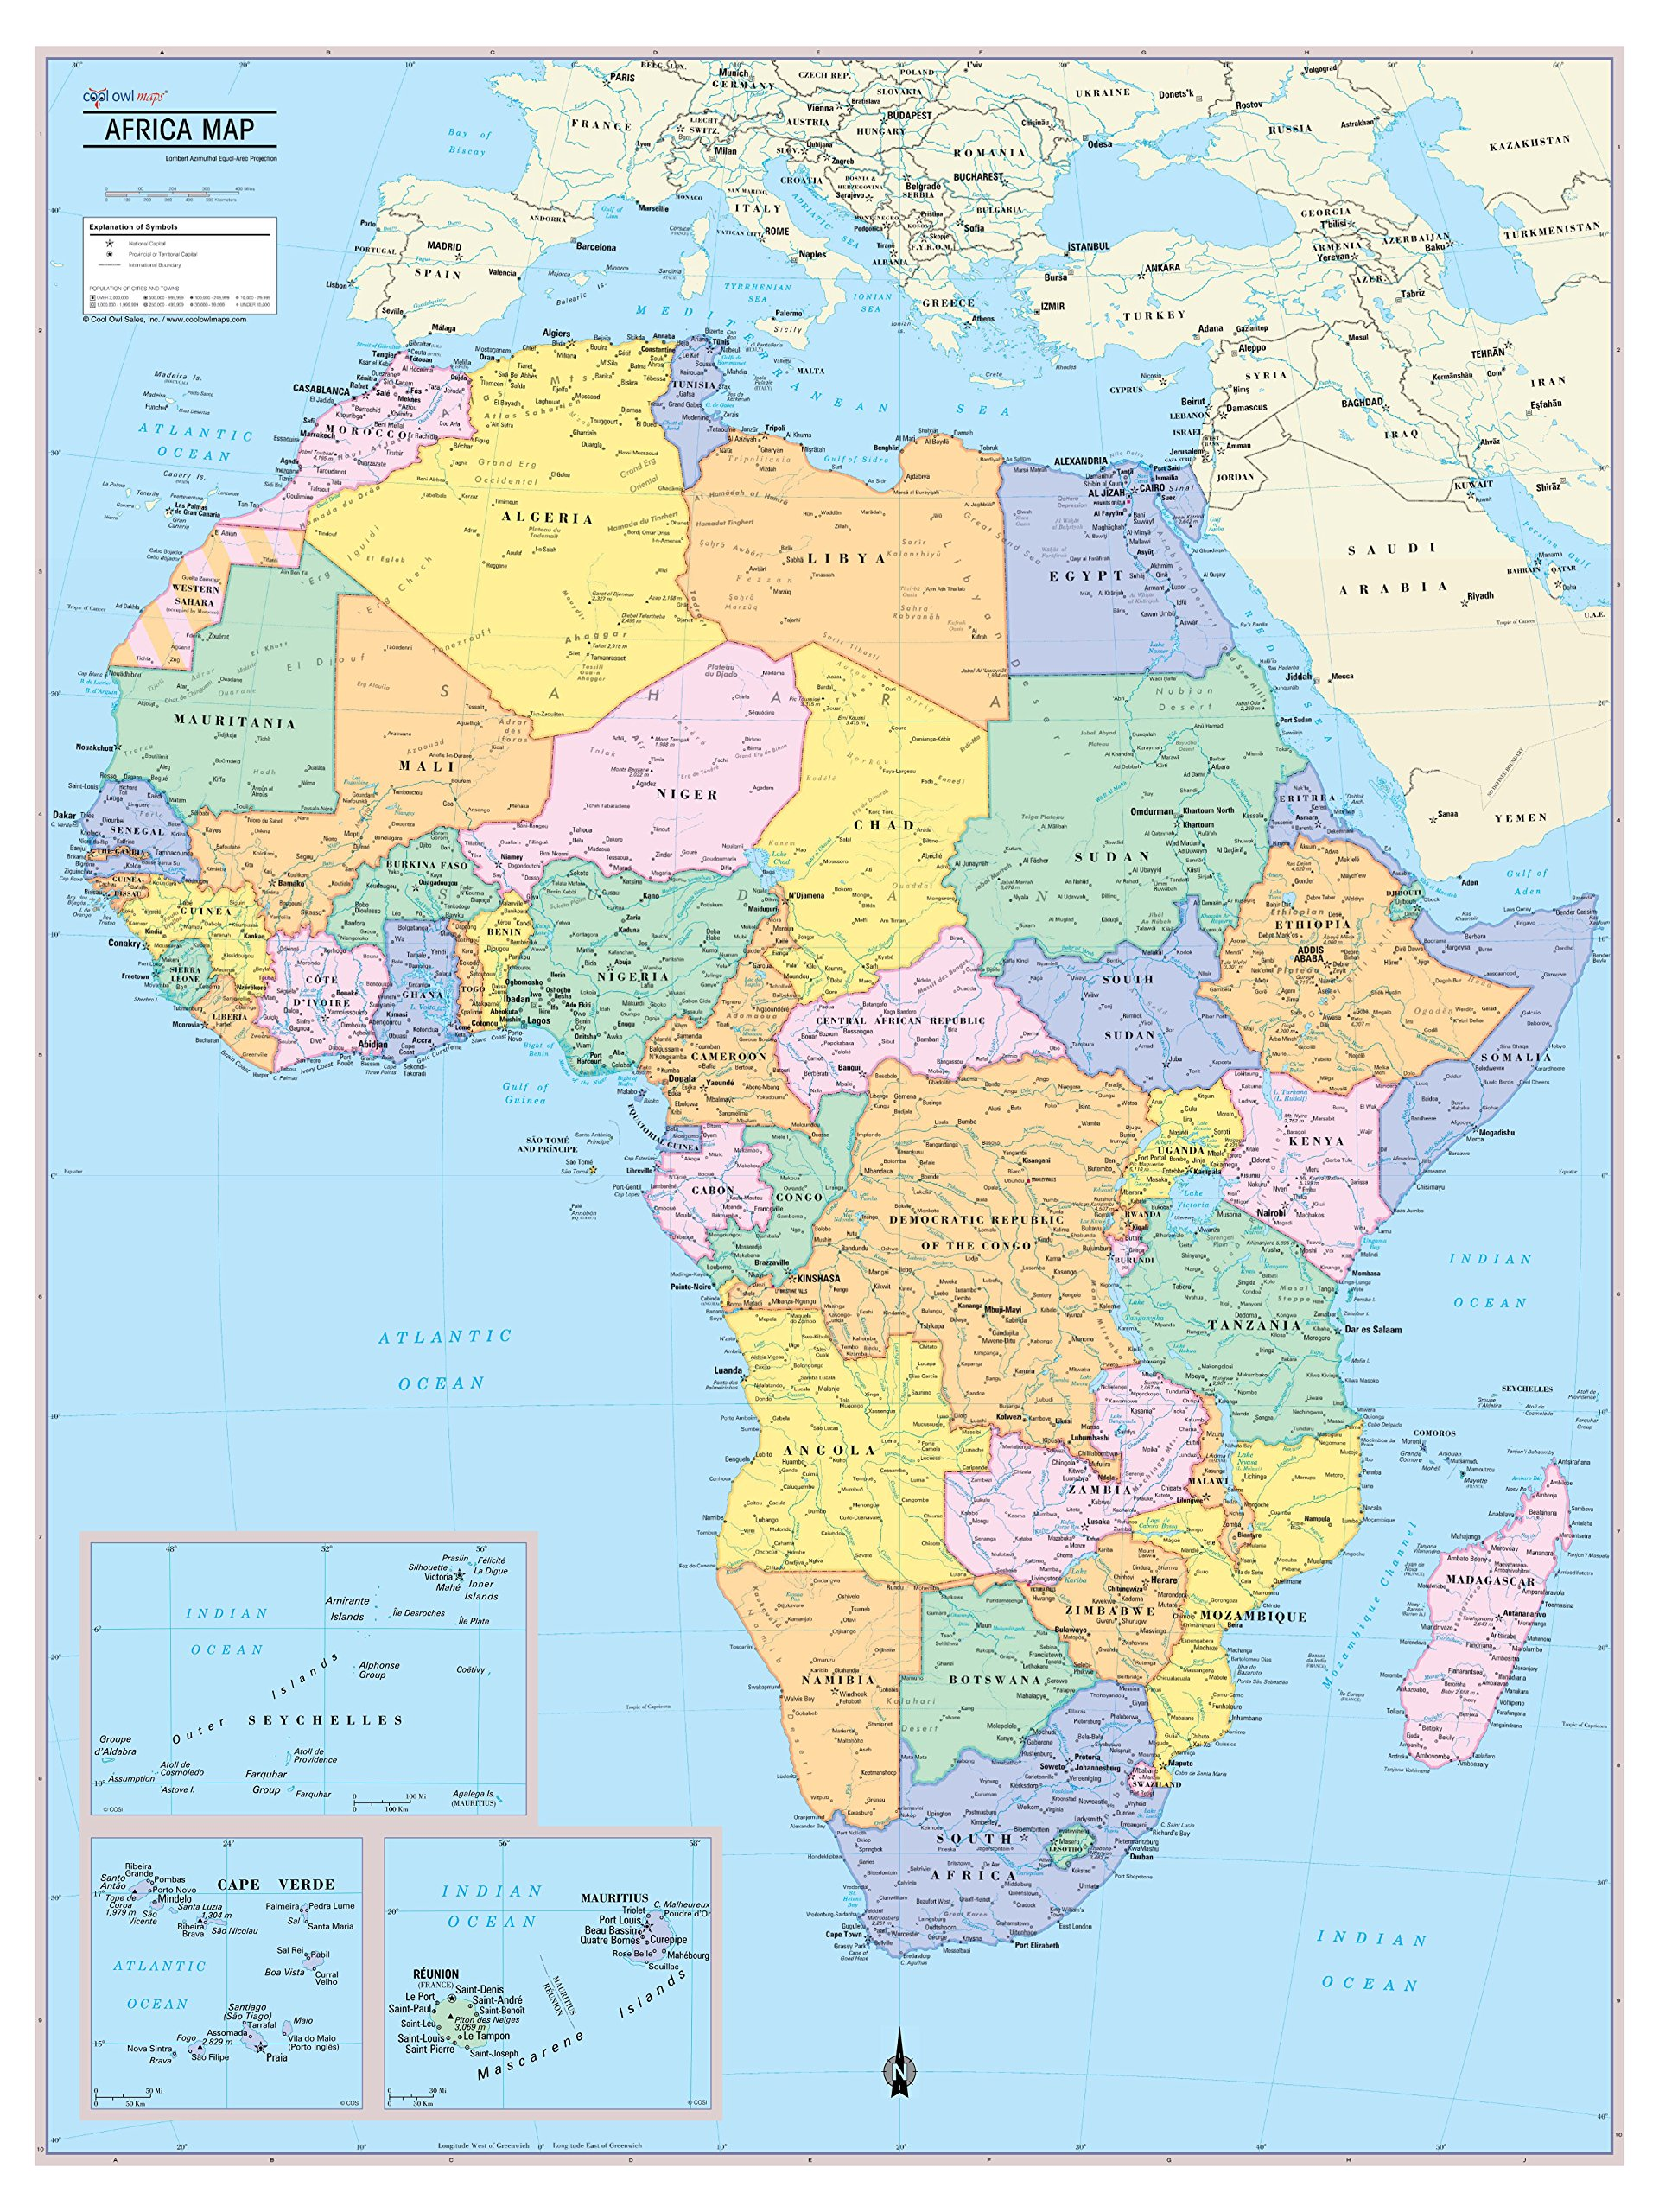 Cool Owl Maps Africa Continent Wall Map Poster - Rolled Paper (30''x40'')